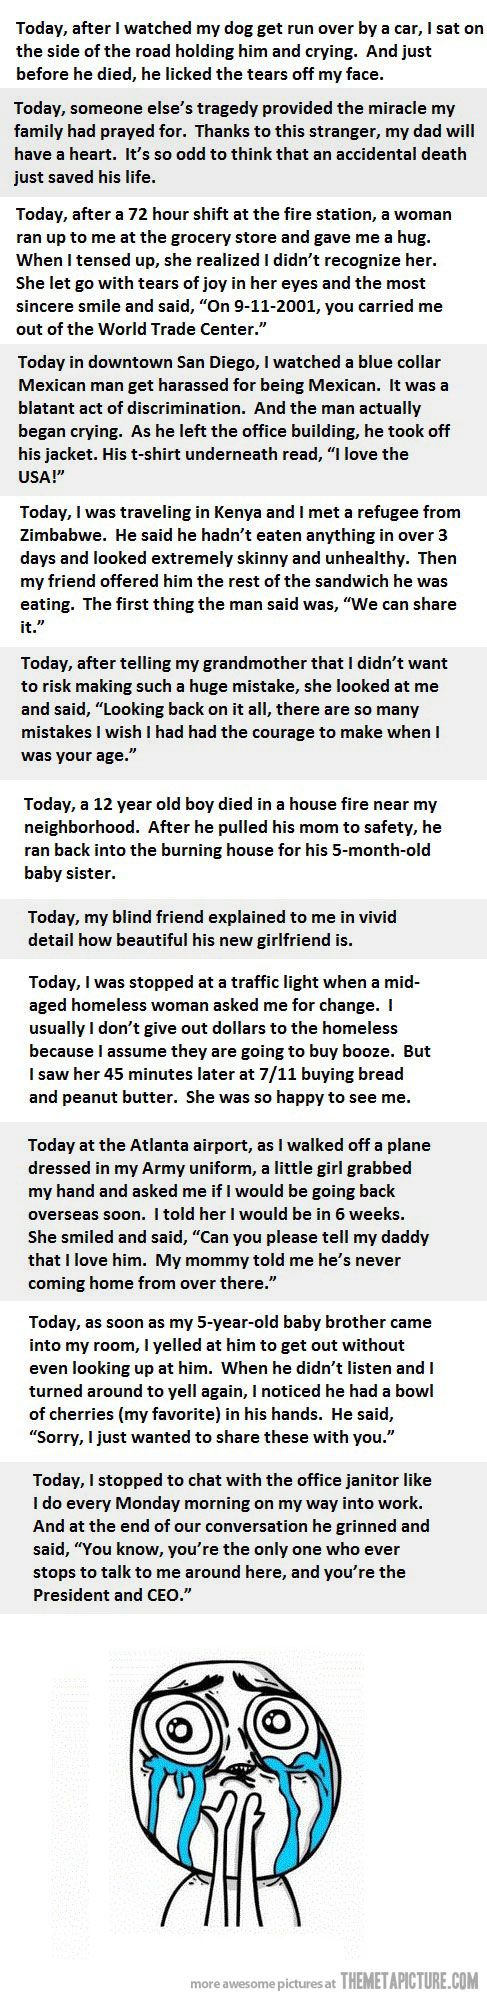 Faith in Humanity= Restored